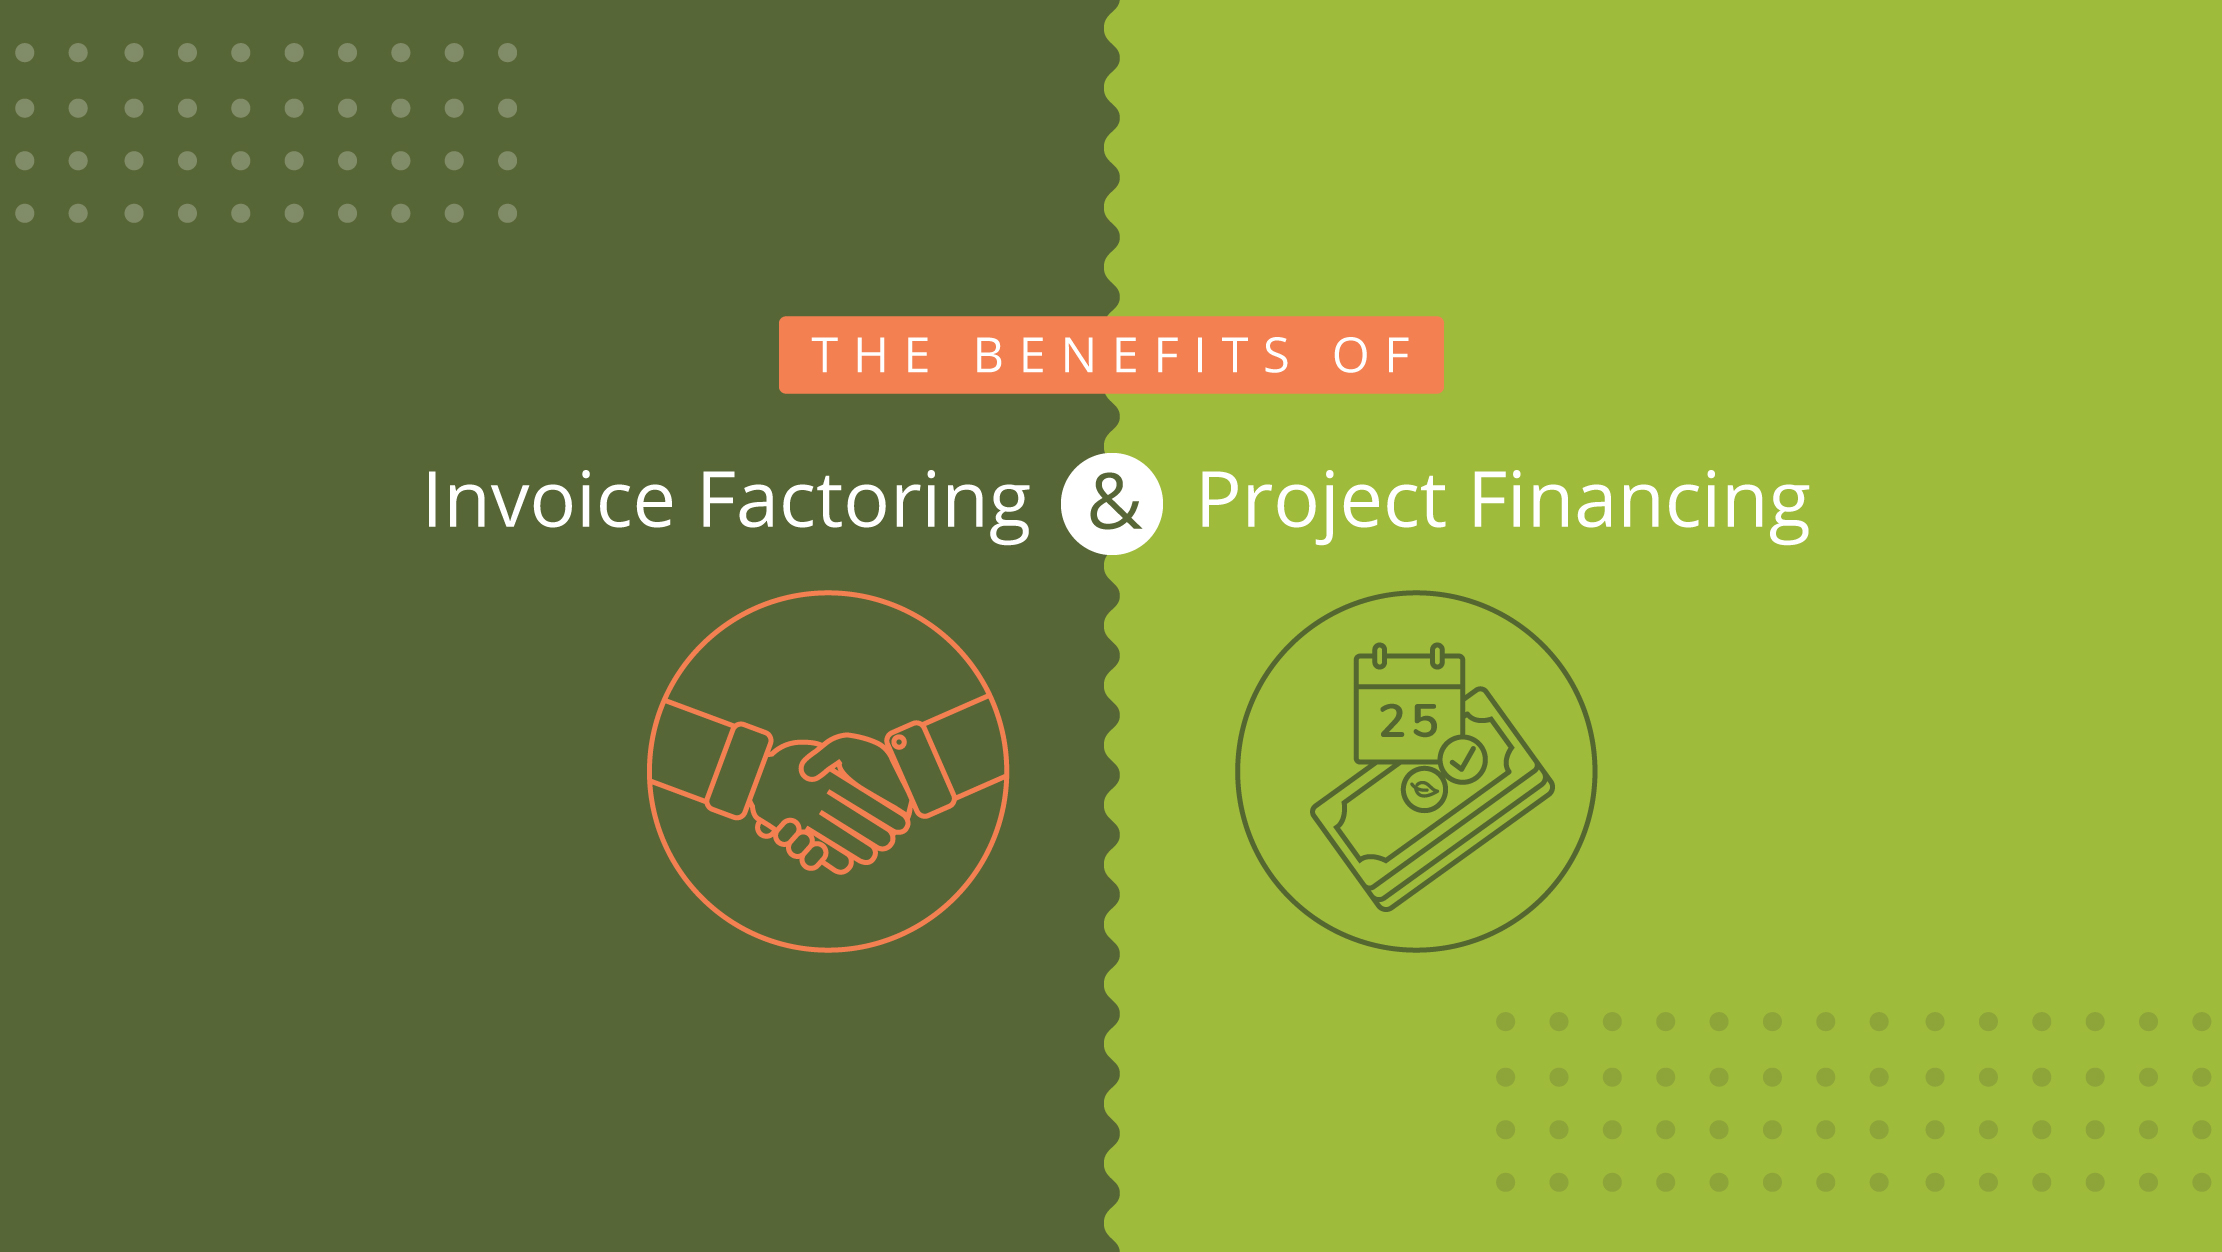 The benefits of invoice factoring and project financing